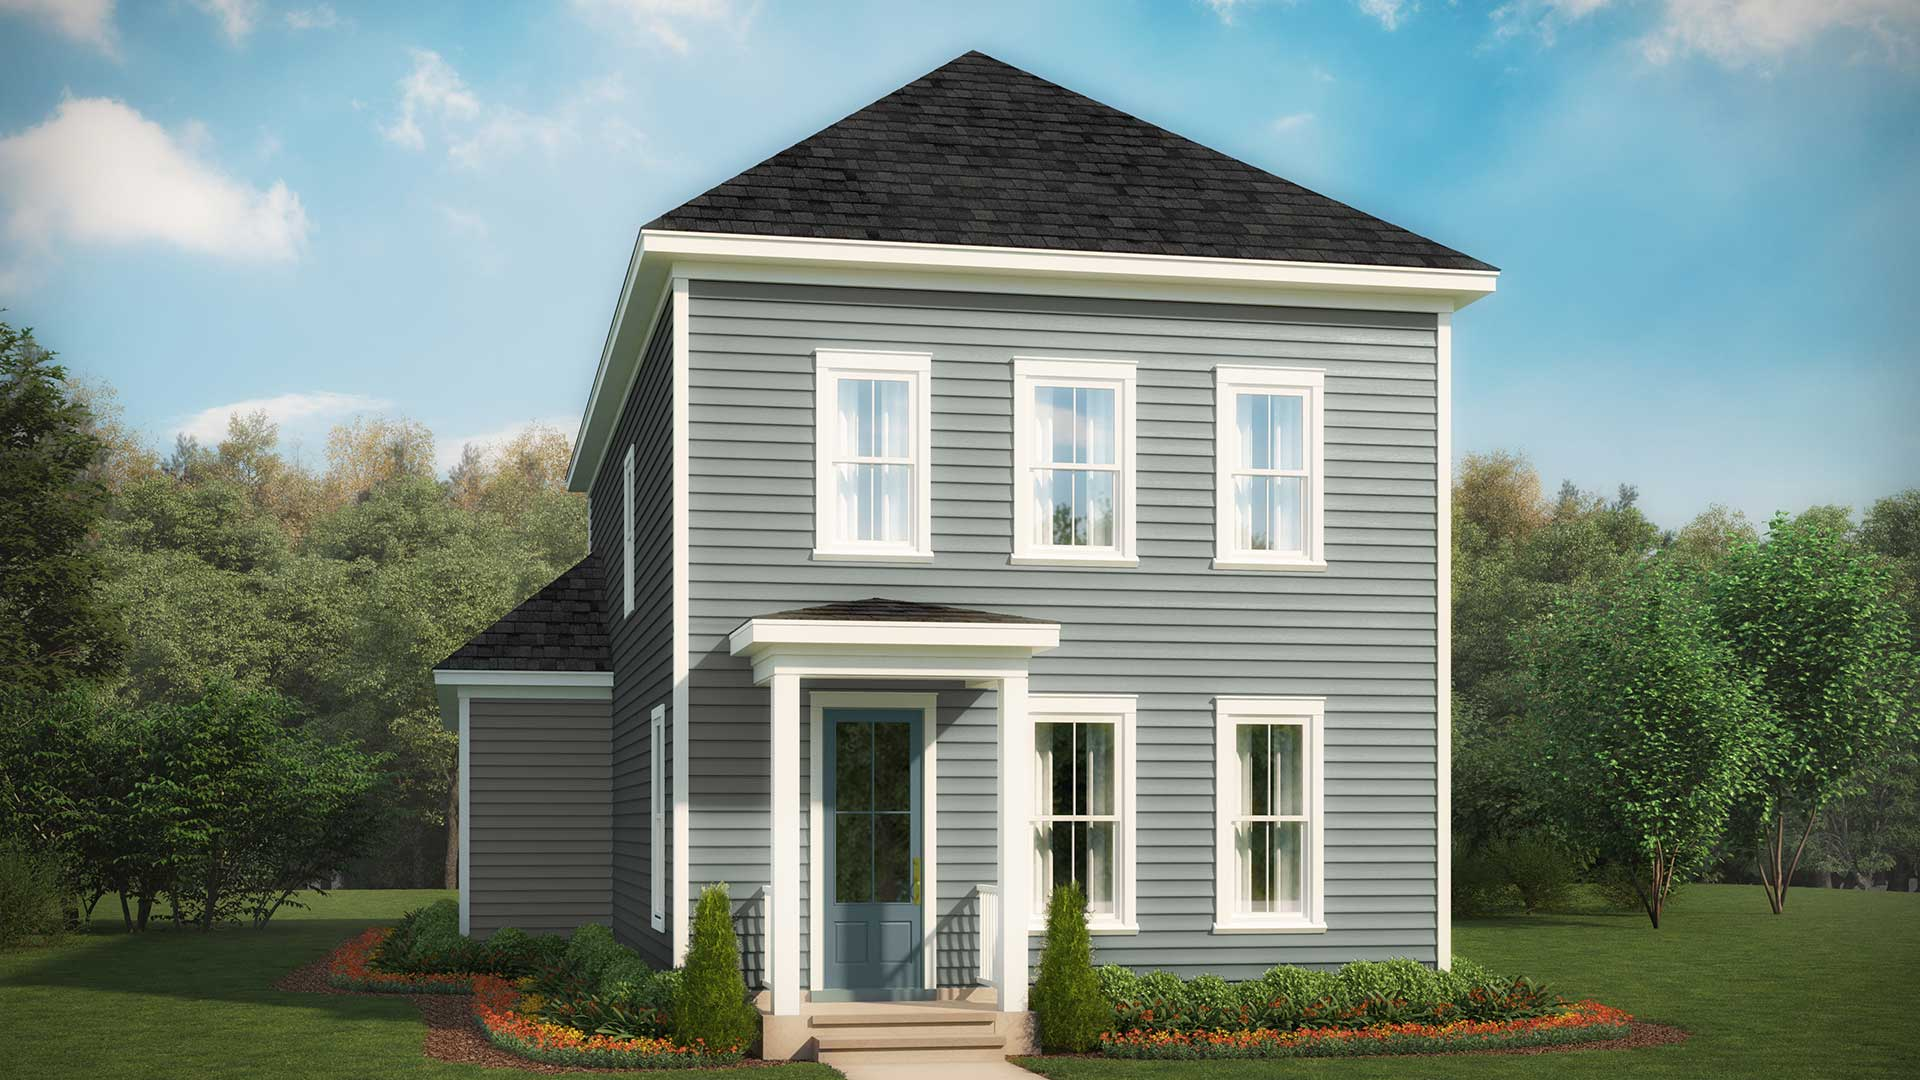 Mayfield Plan by Stanley Martin Homes, New Homes in South Carolina